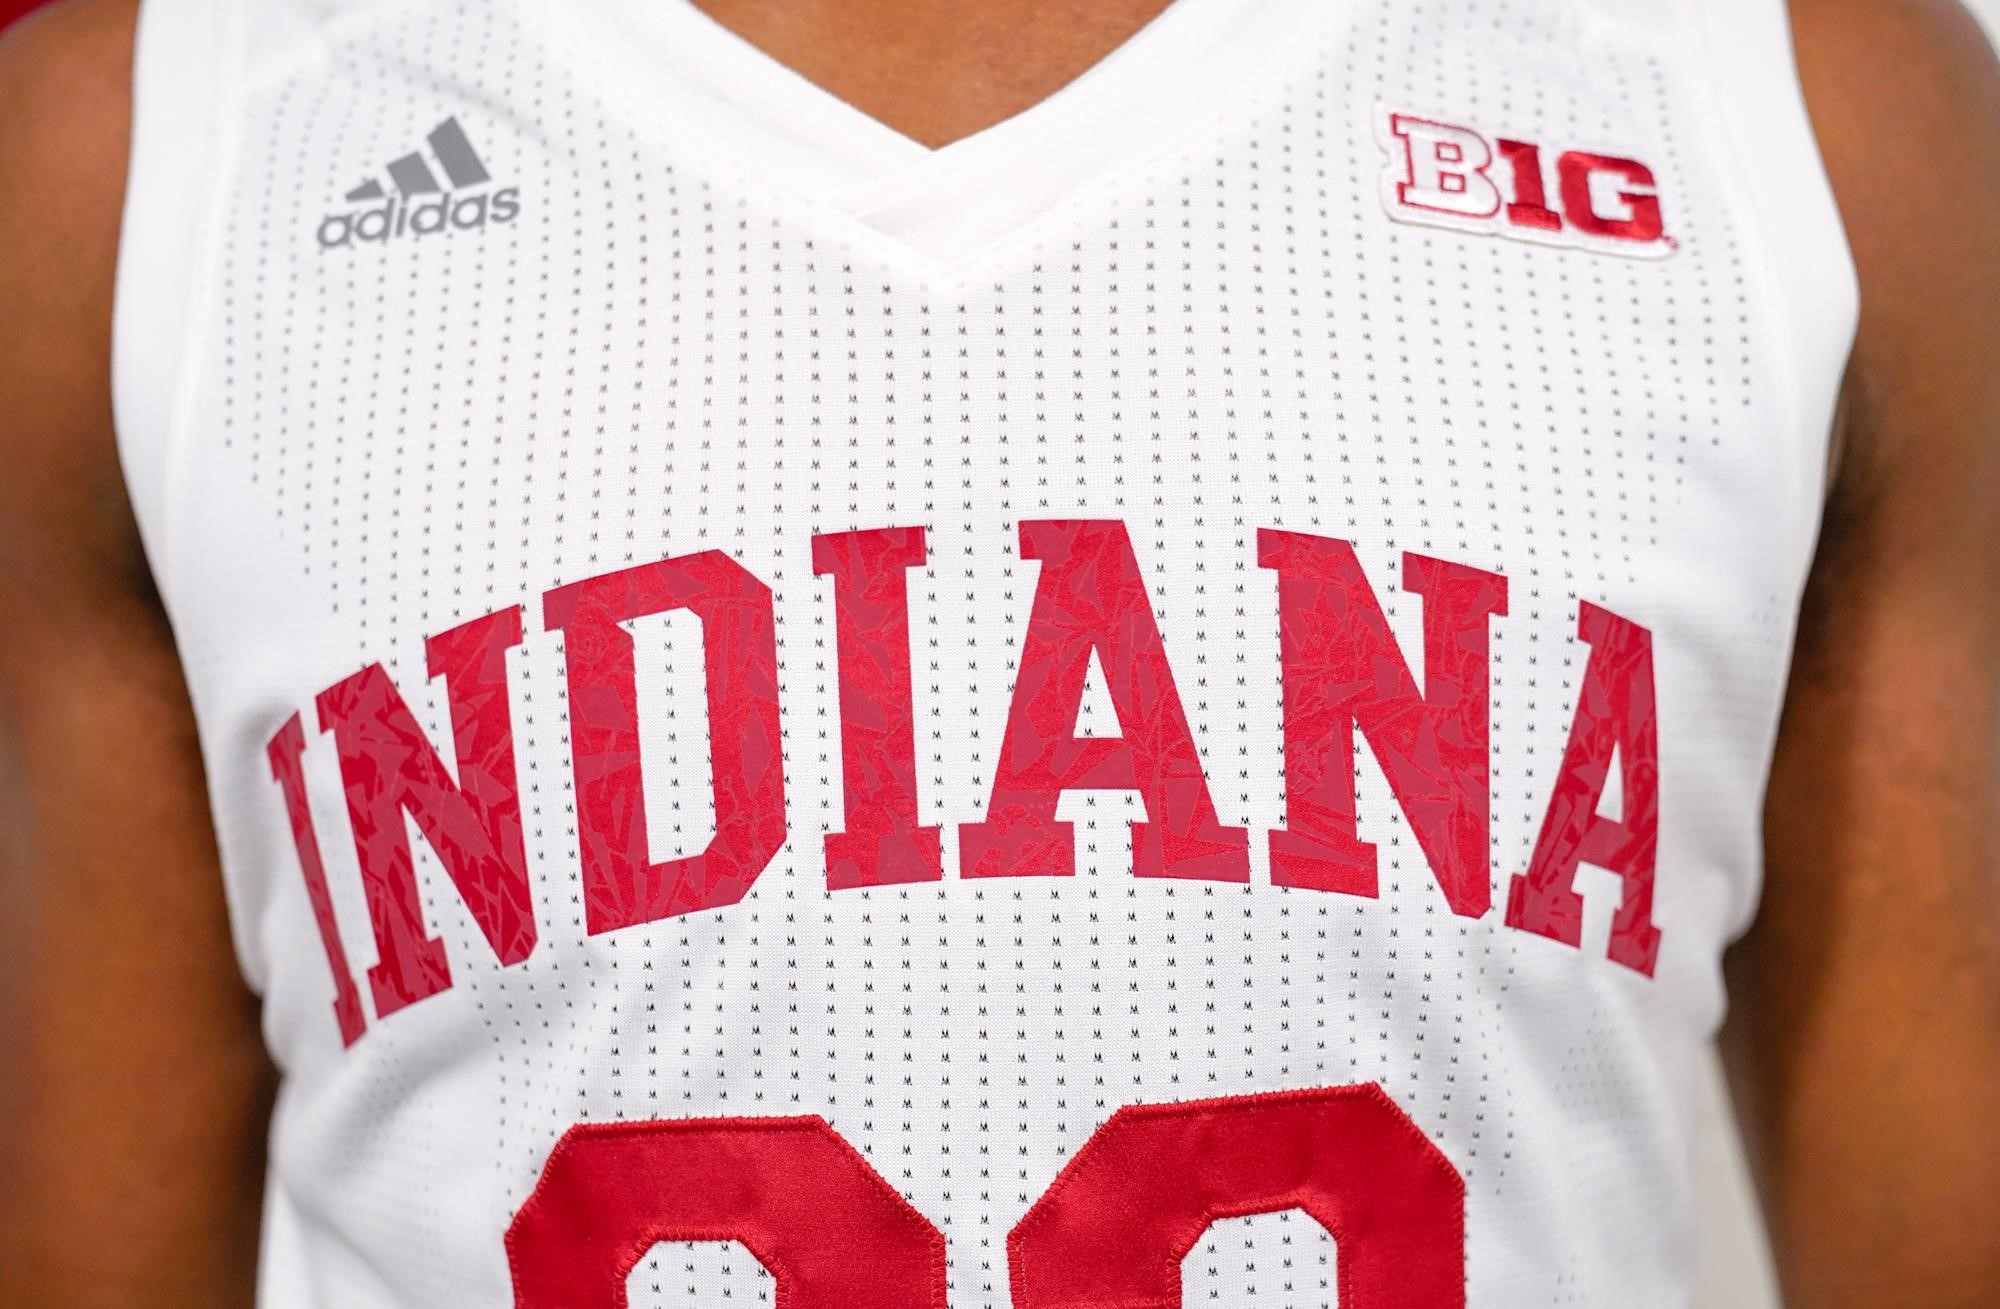 promo code cae7d 6f7aa Game Time Approaches For Indiana Hoosiers - Indiana ...